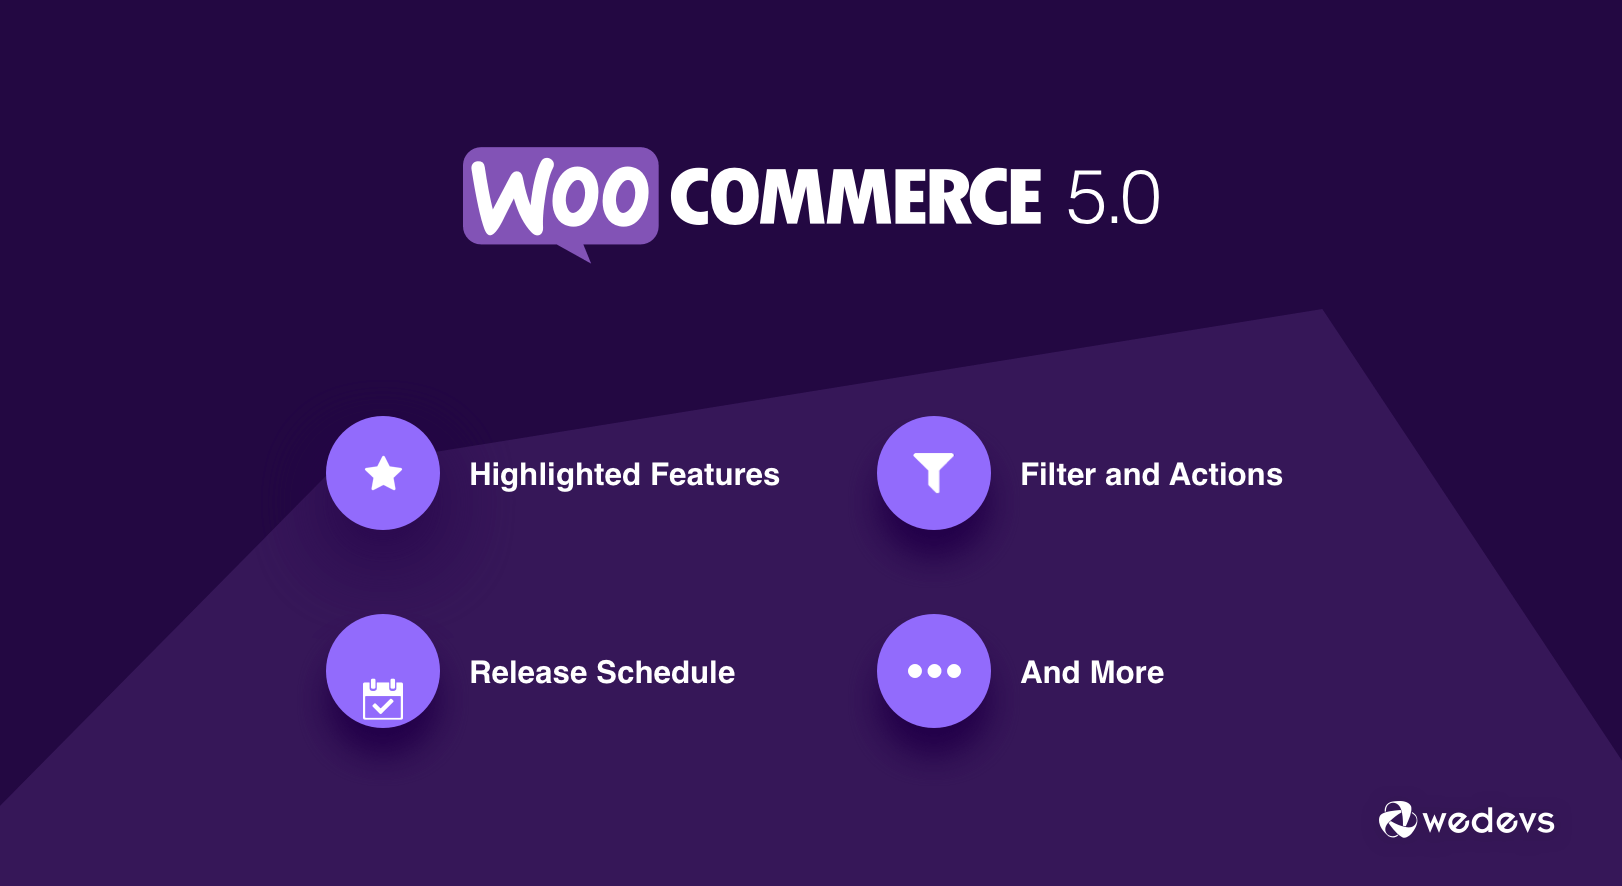 WooCommerce Release Update: What's New in WooCommerce 5.0